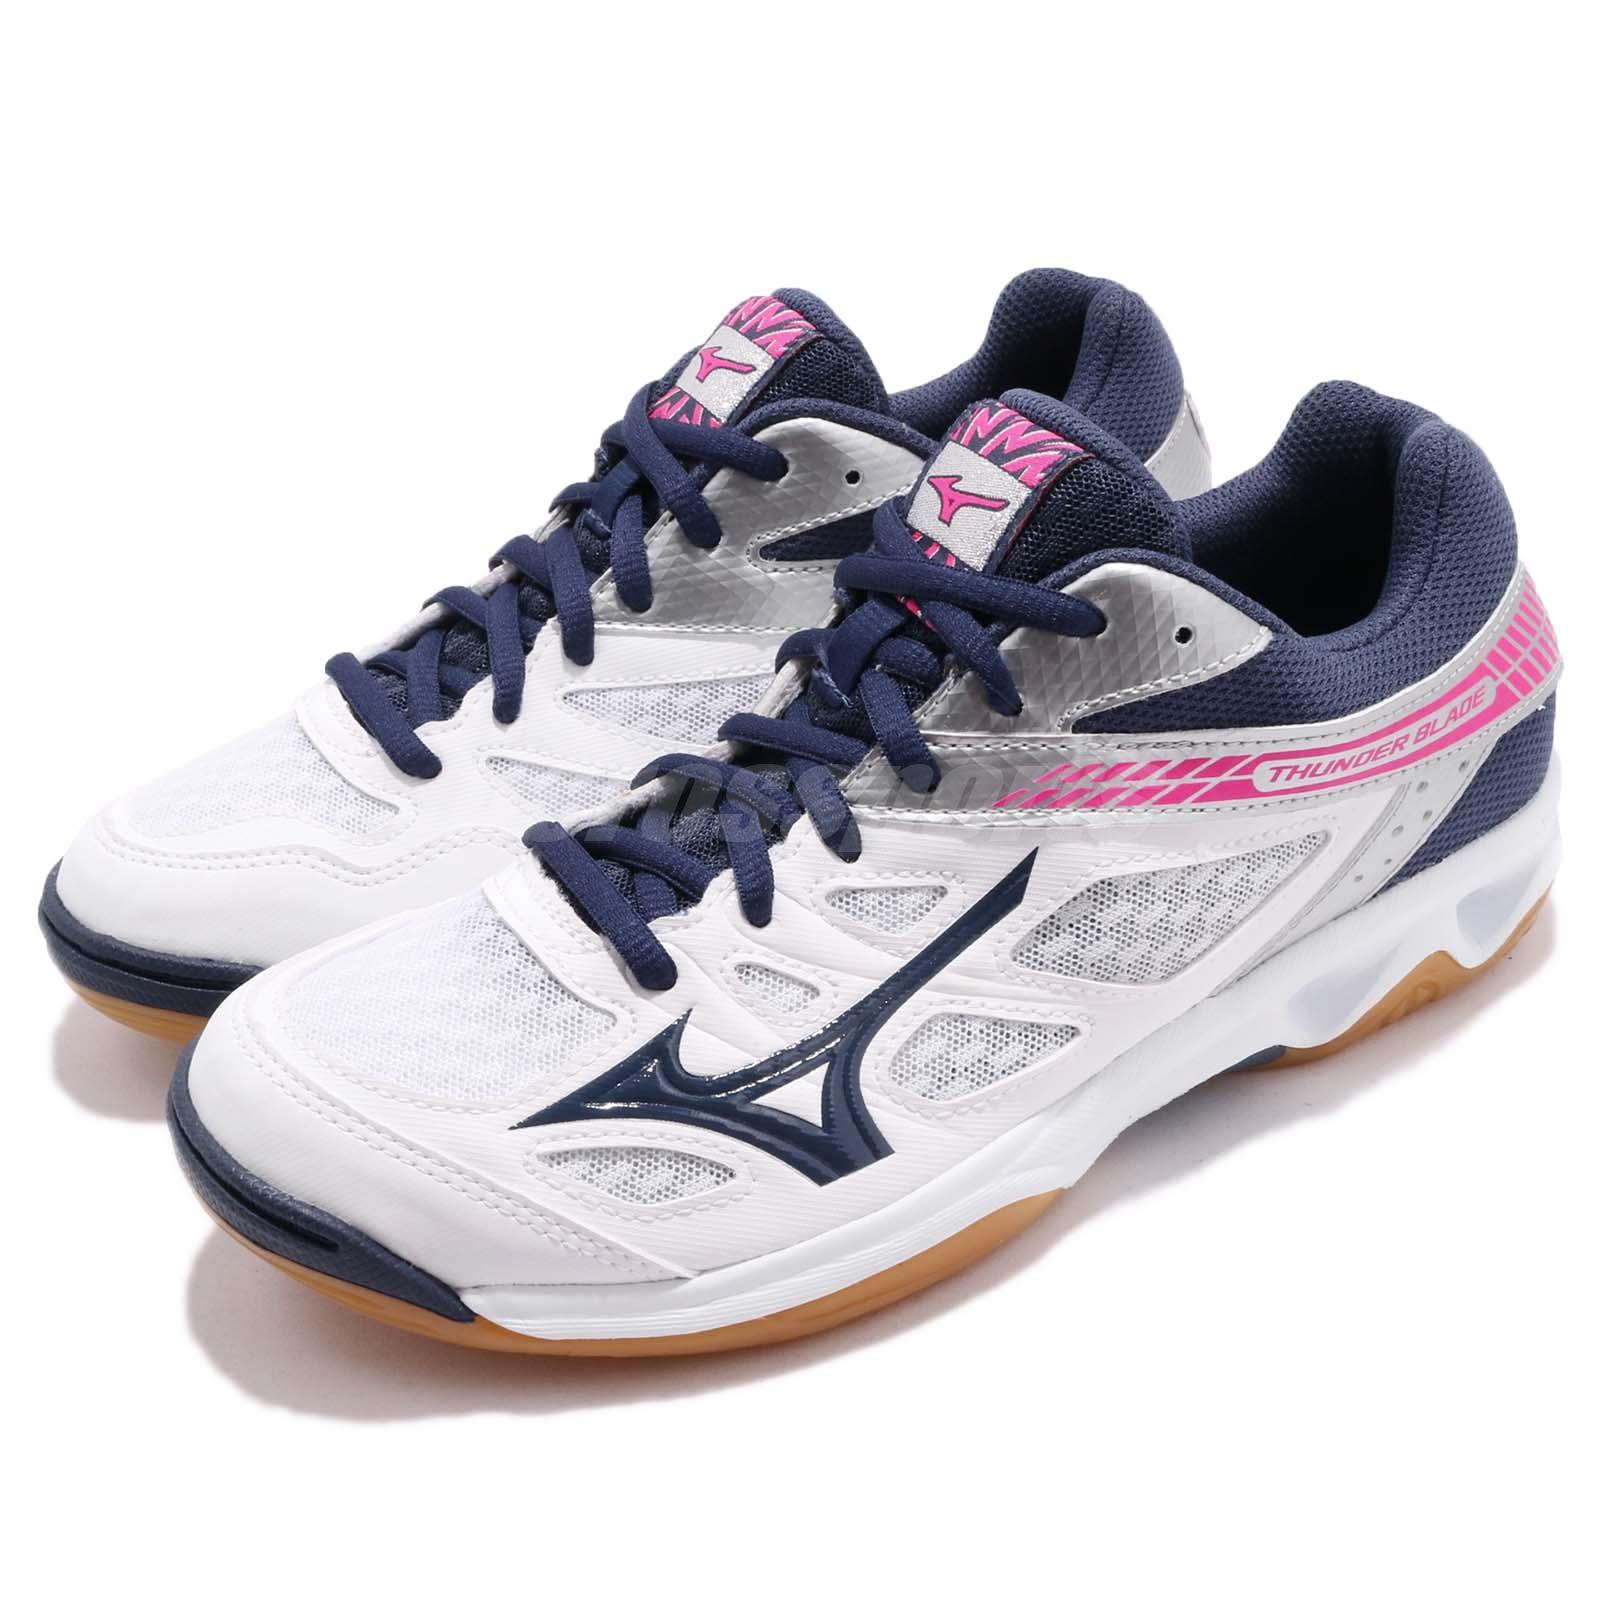 92ccd8ae0c Details about Mizuno Thunder Blade White Navy Pink Men Volleyball Badminton  Shoes V1GA1770-16